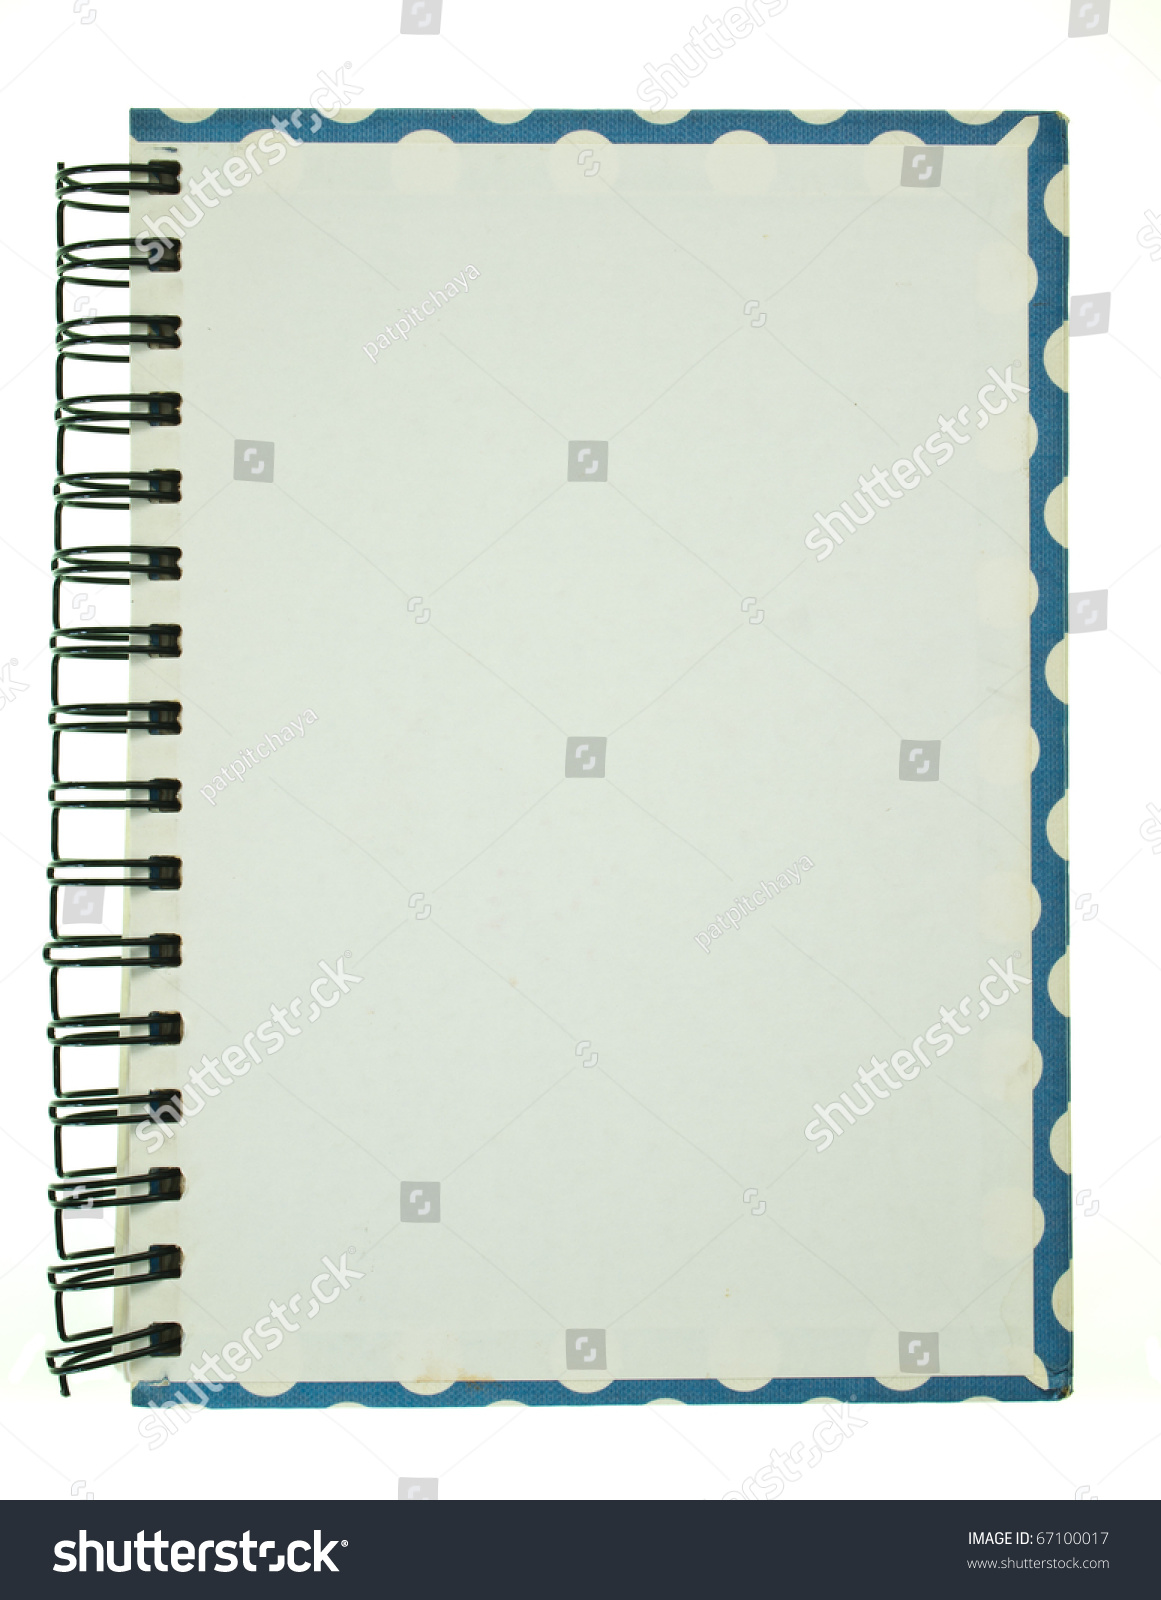 Notebook Cover Background : Back cover designs border spiral notebook stock photo